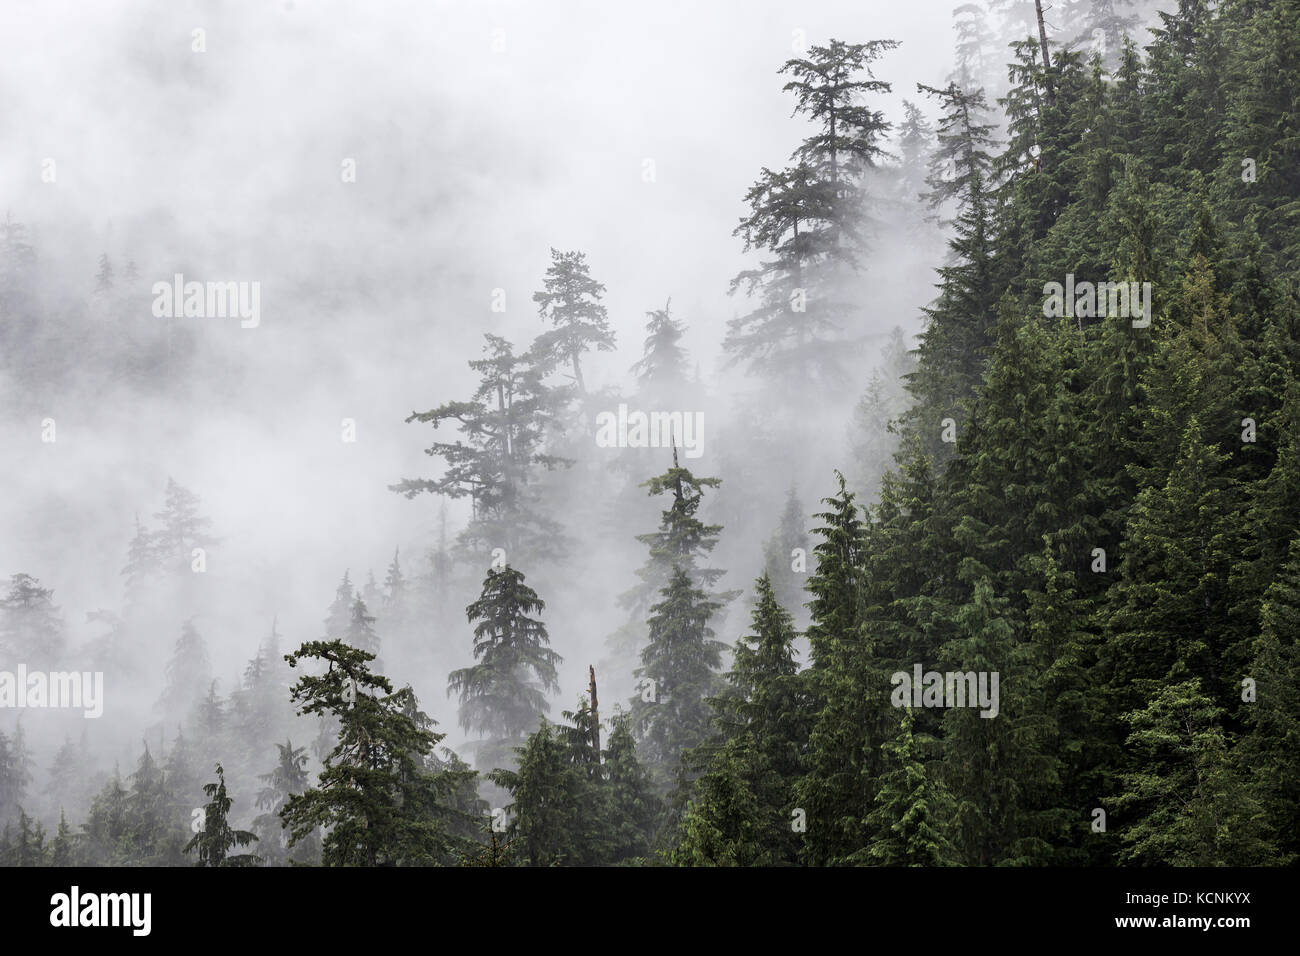 Mist enshrouded trees along a hillside evoke an ethereal presence, the quintessential Coastal scenic, Vancouver - Stock Image